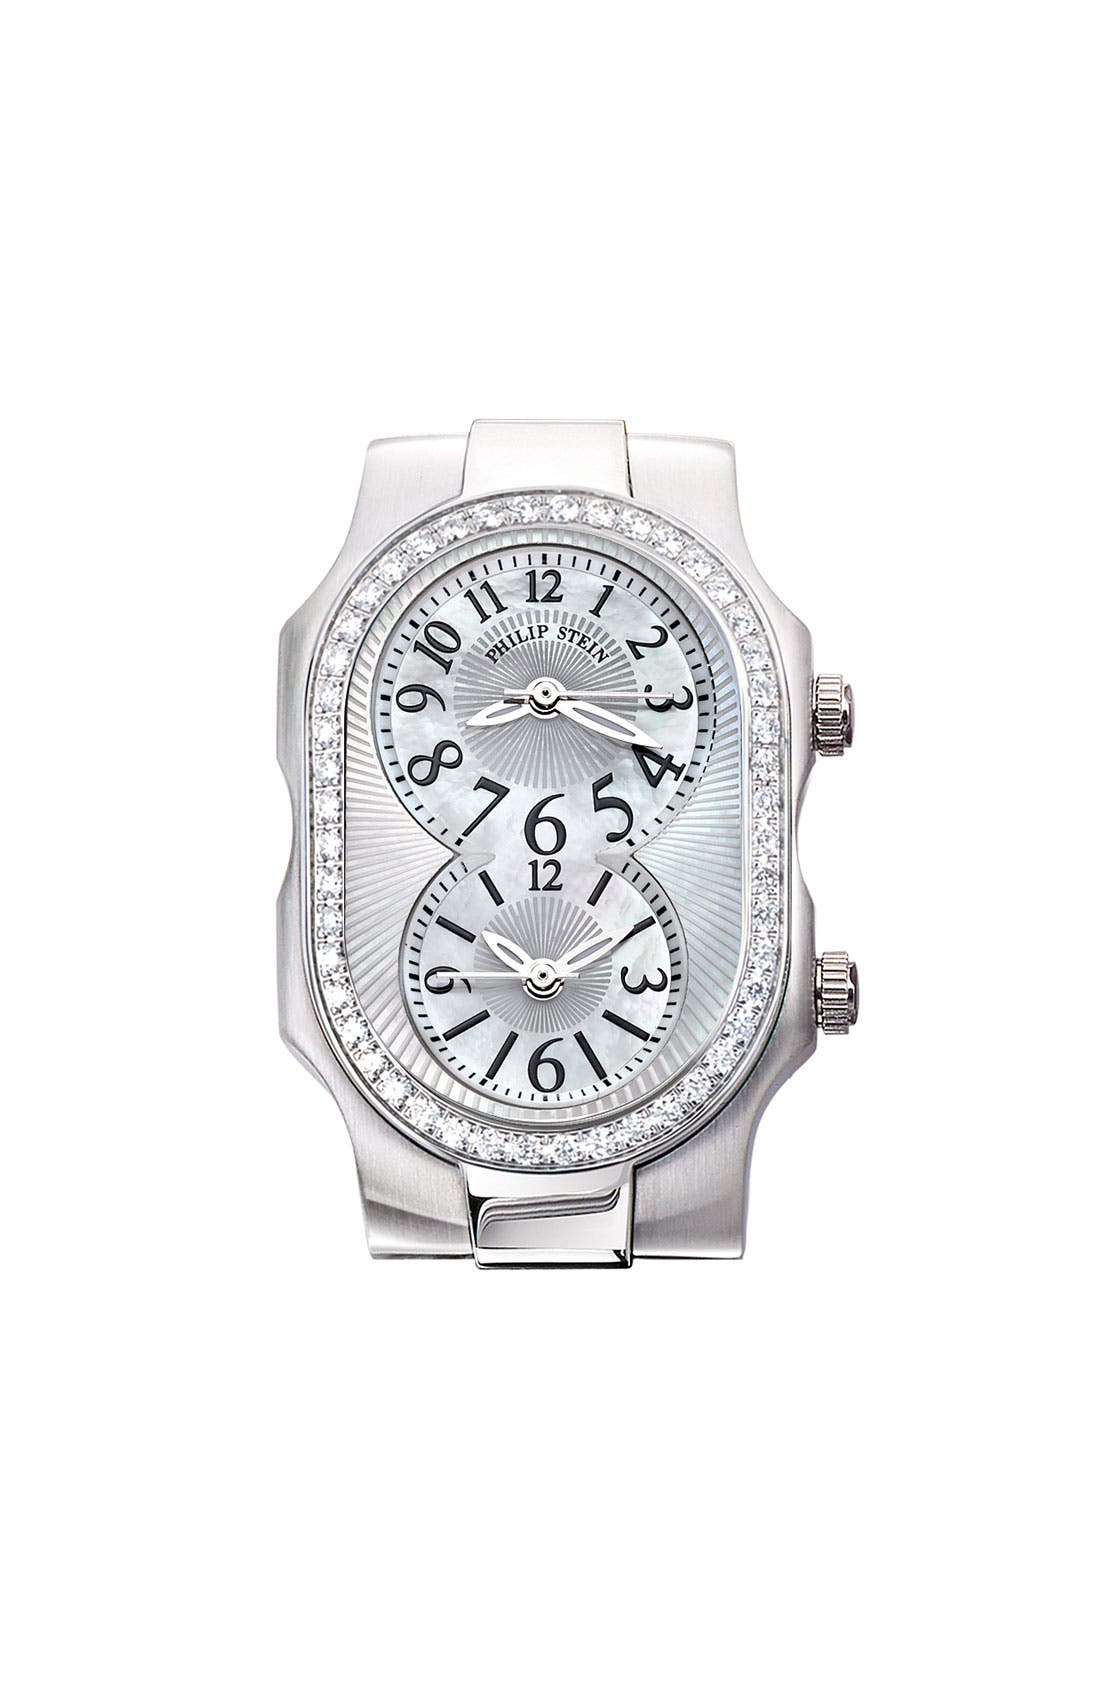 Main Image - Philip Stein® 'Signature' Small Diamond & Mother-of-Pearl Watch Case